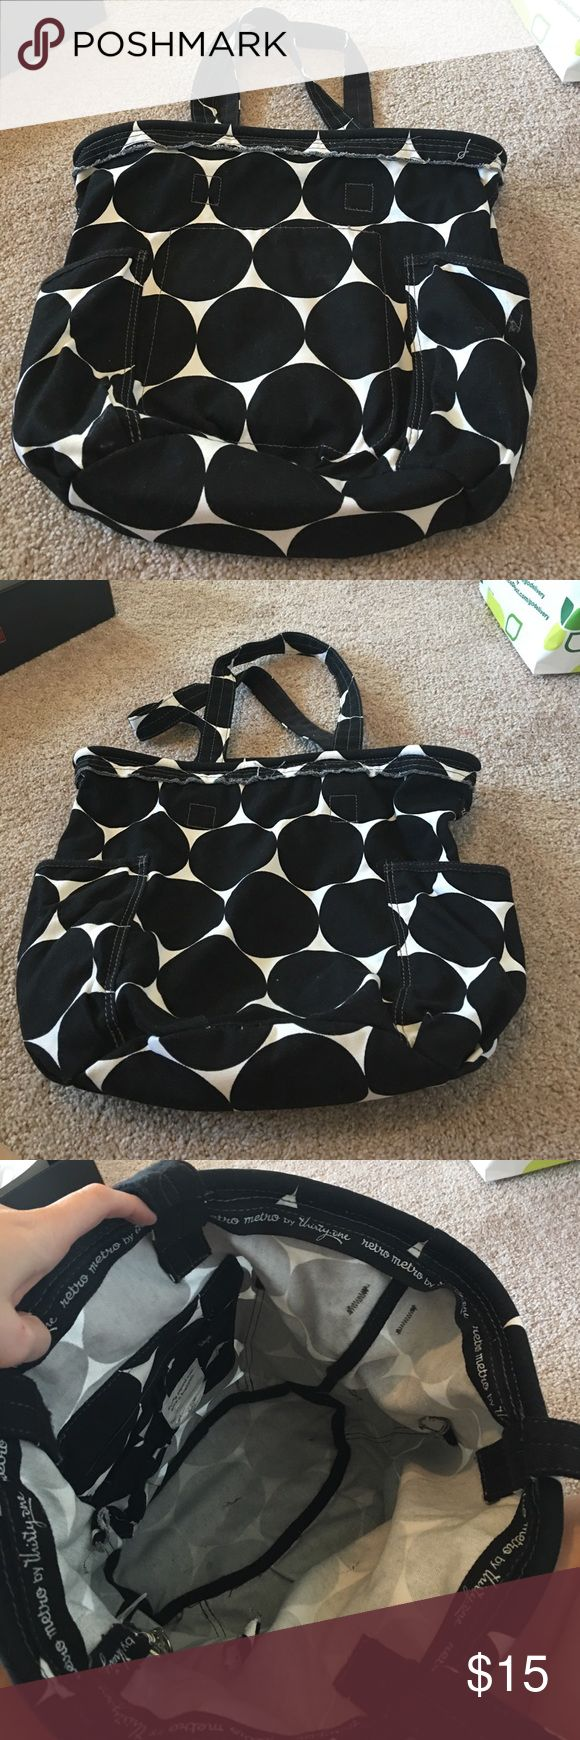 31 Discontinued Retro Metro Tote Good condition. They no longer have this style. One of the most popular. Black and white dot. Retro metro. Has key clip attachment. thirty one  Bags Totes